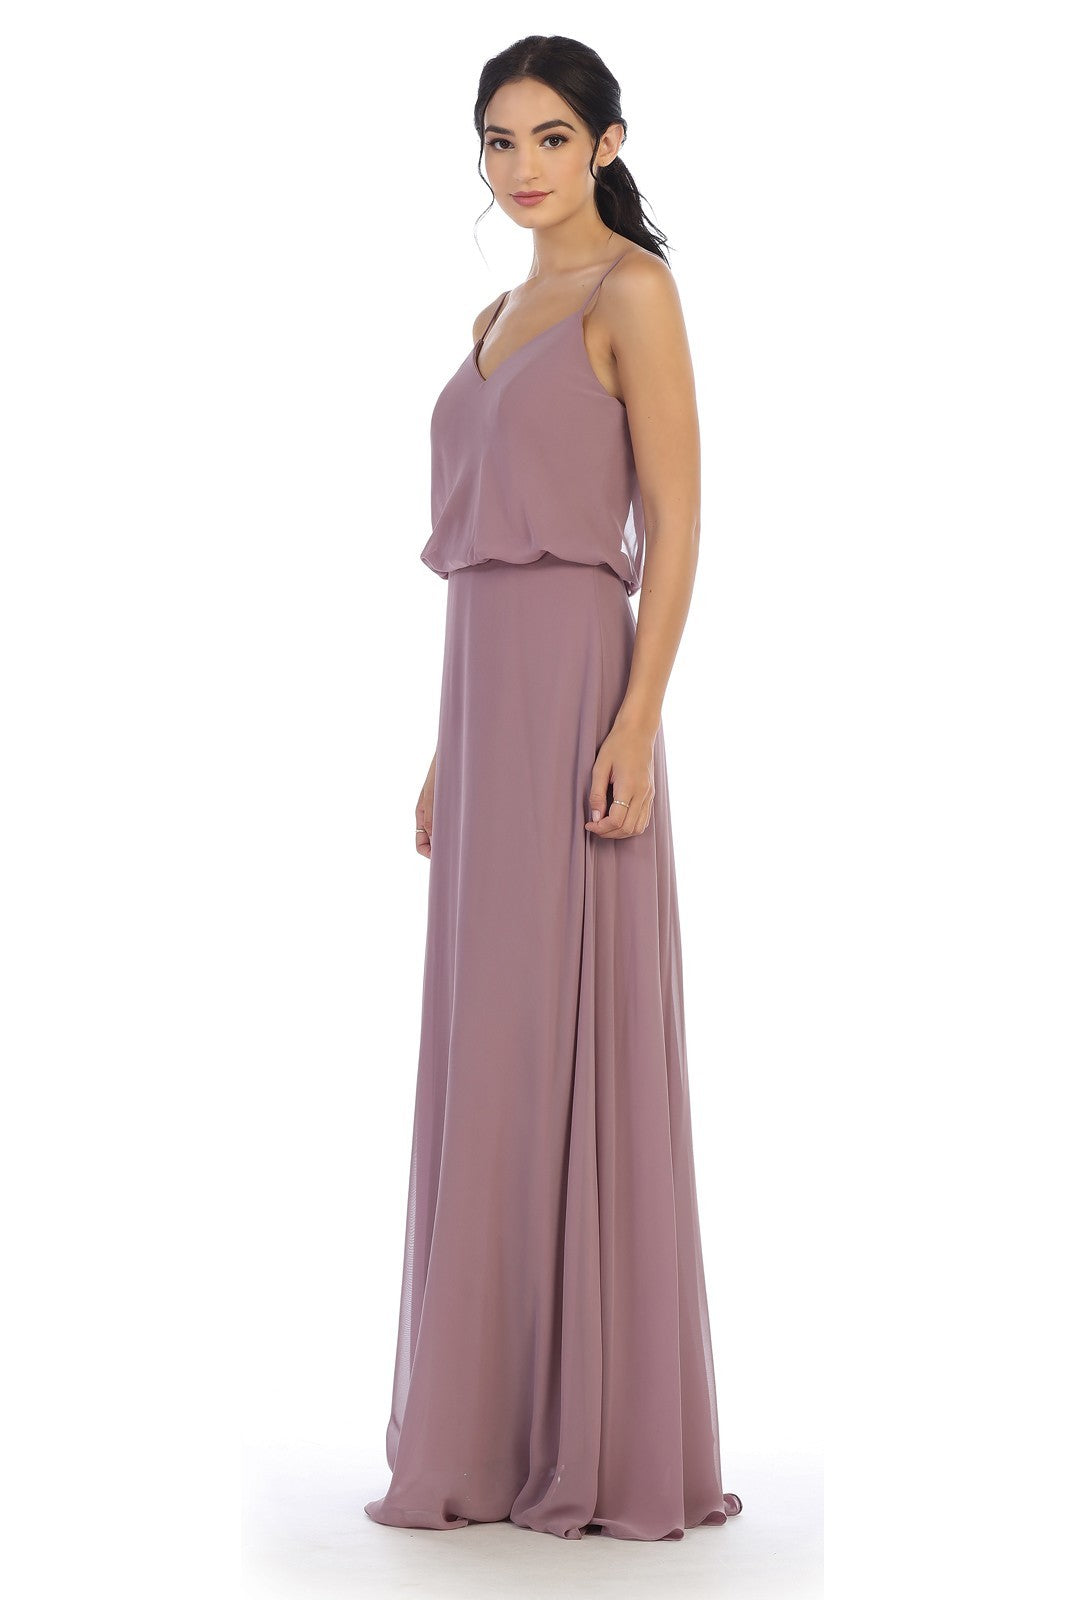 Blouse Top Chiffon Gown